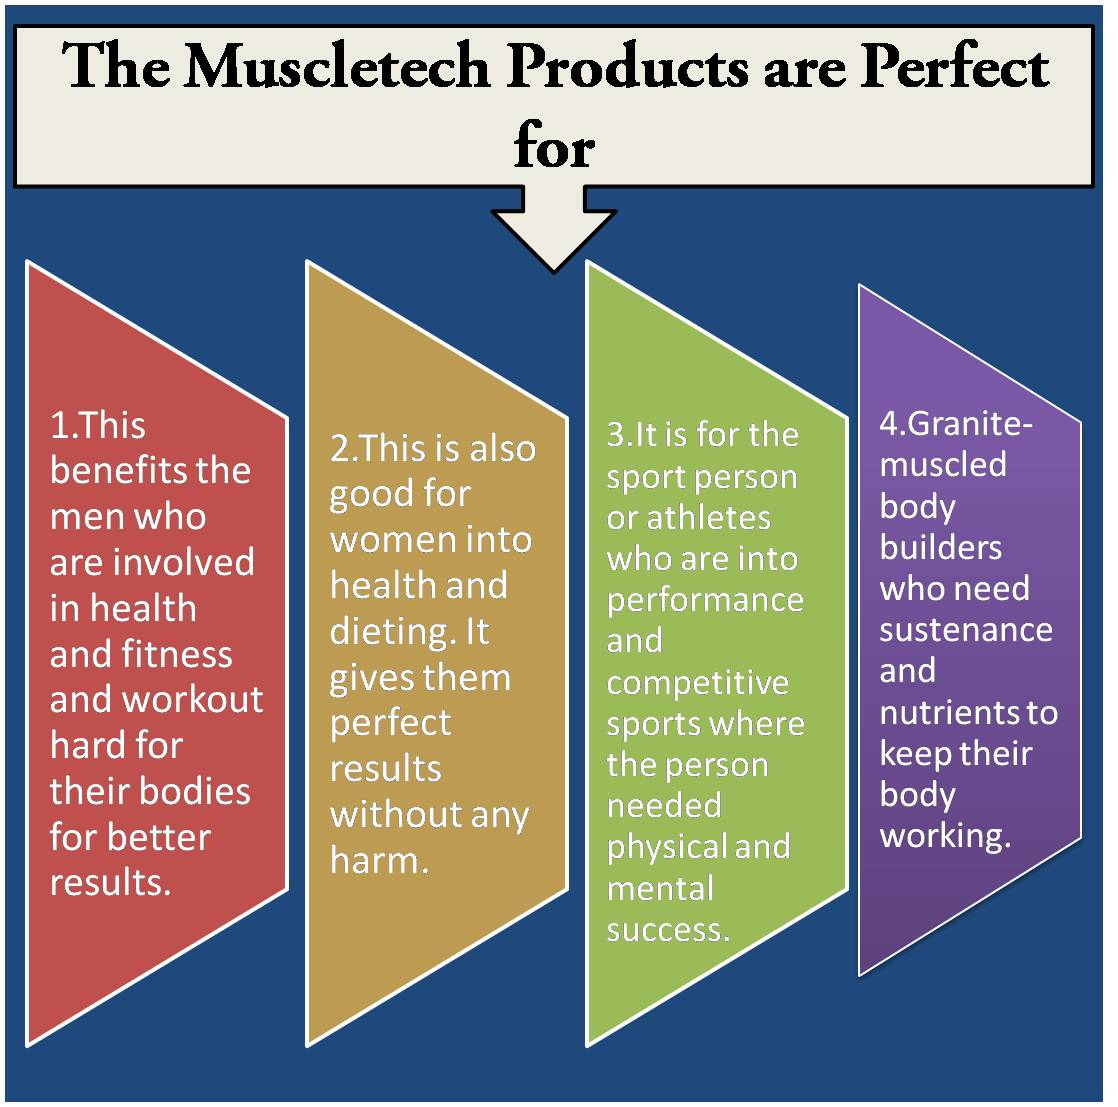 The MuscleTech products are perfect for